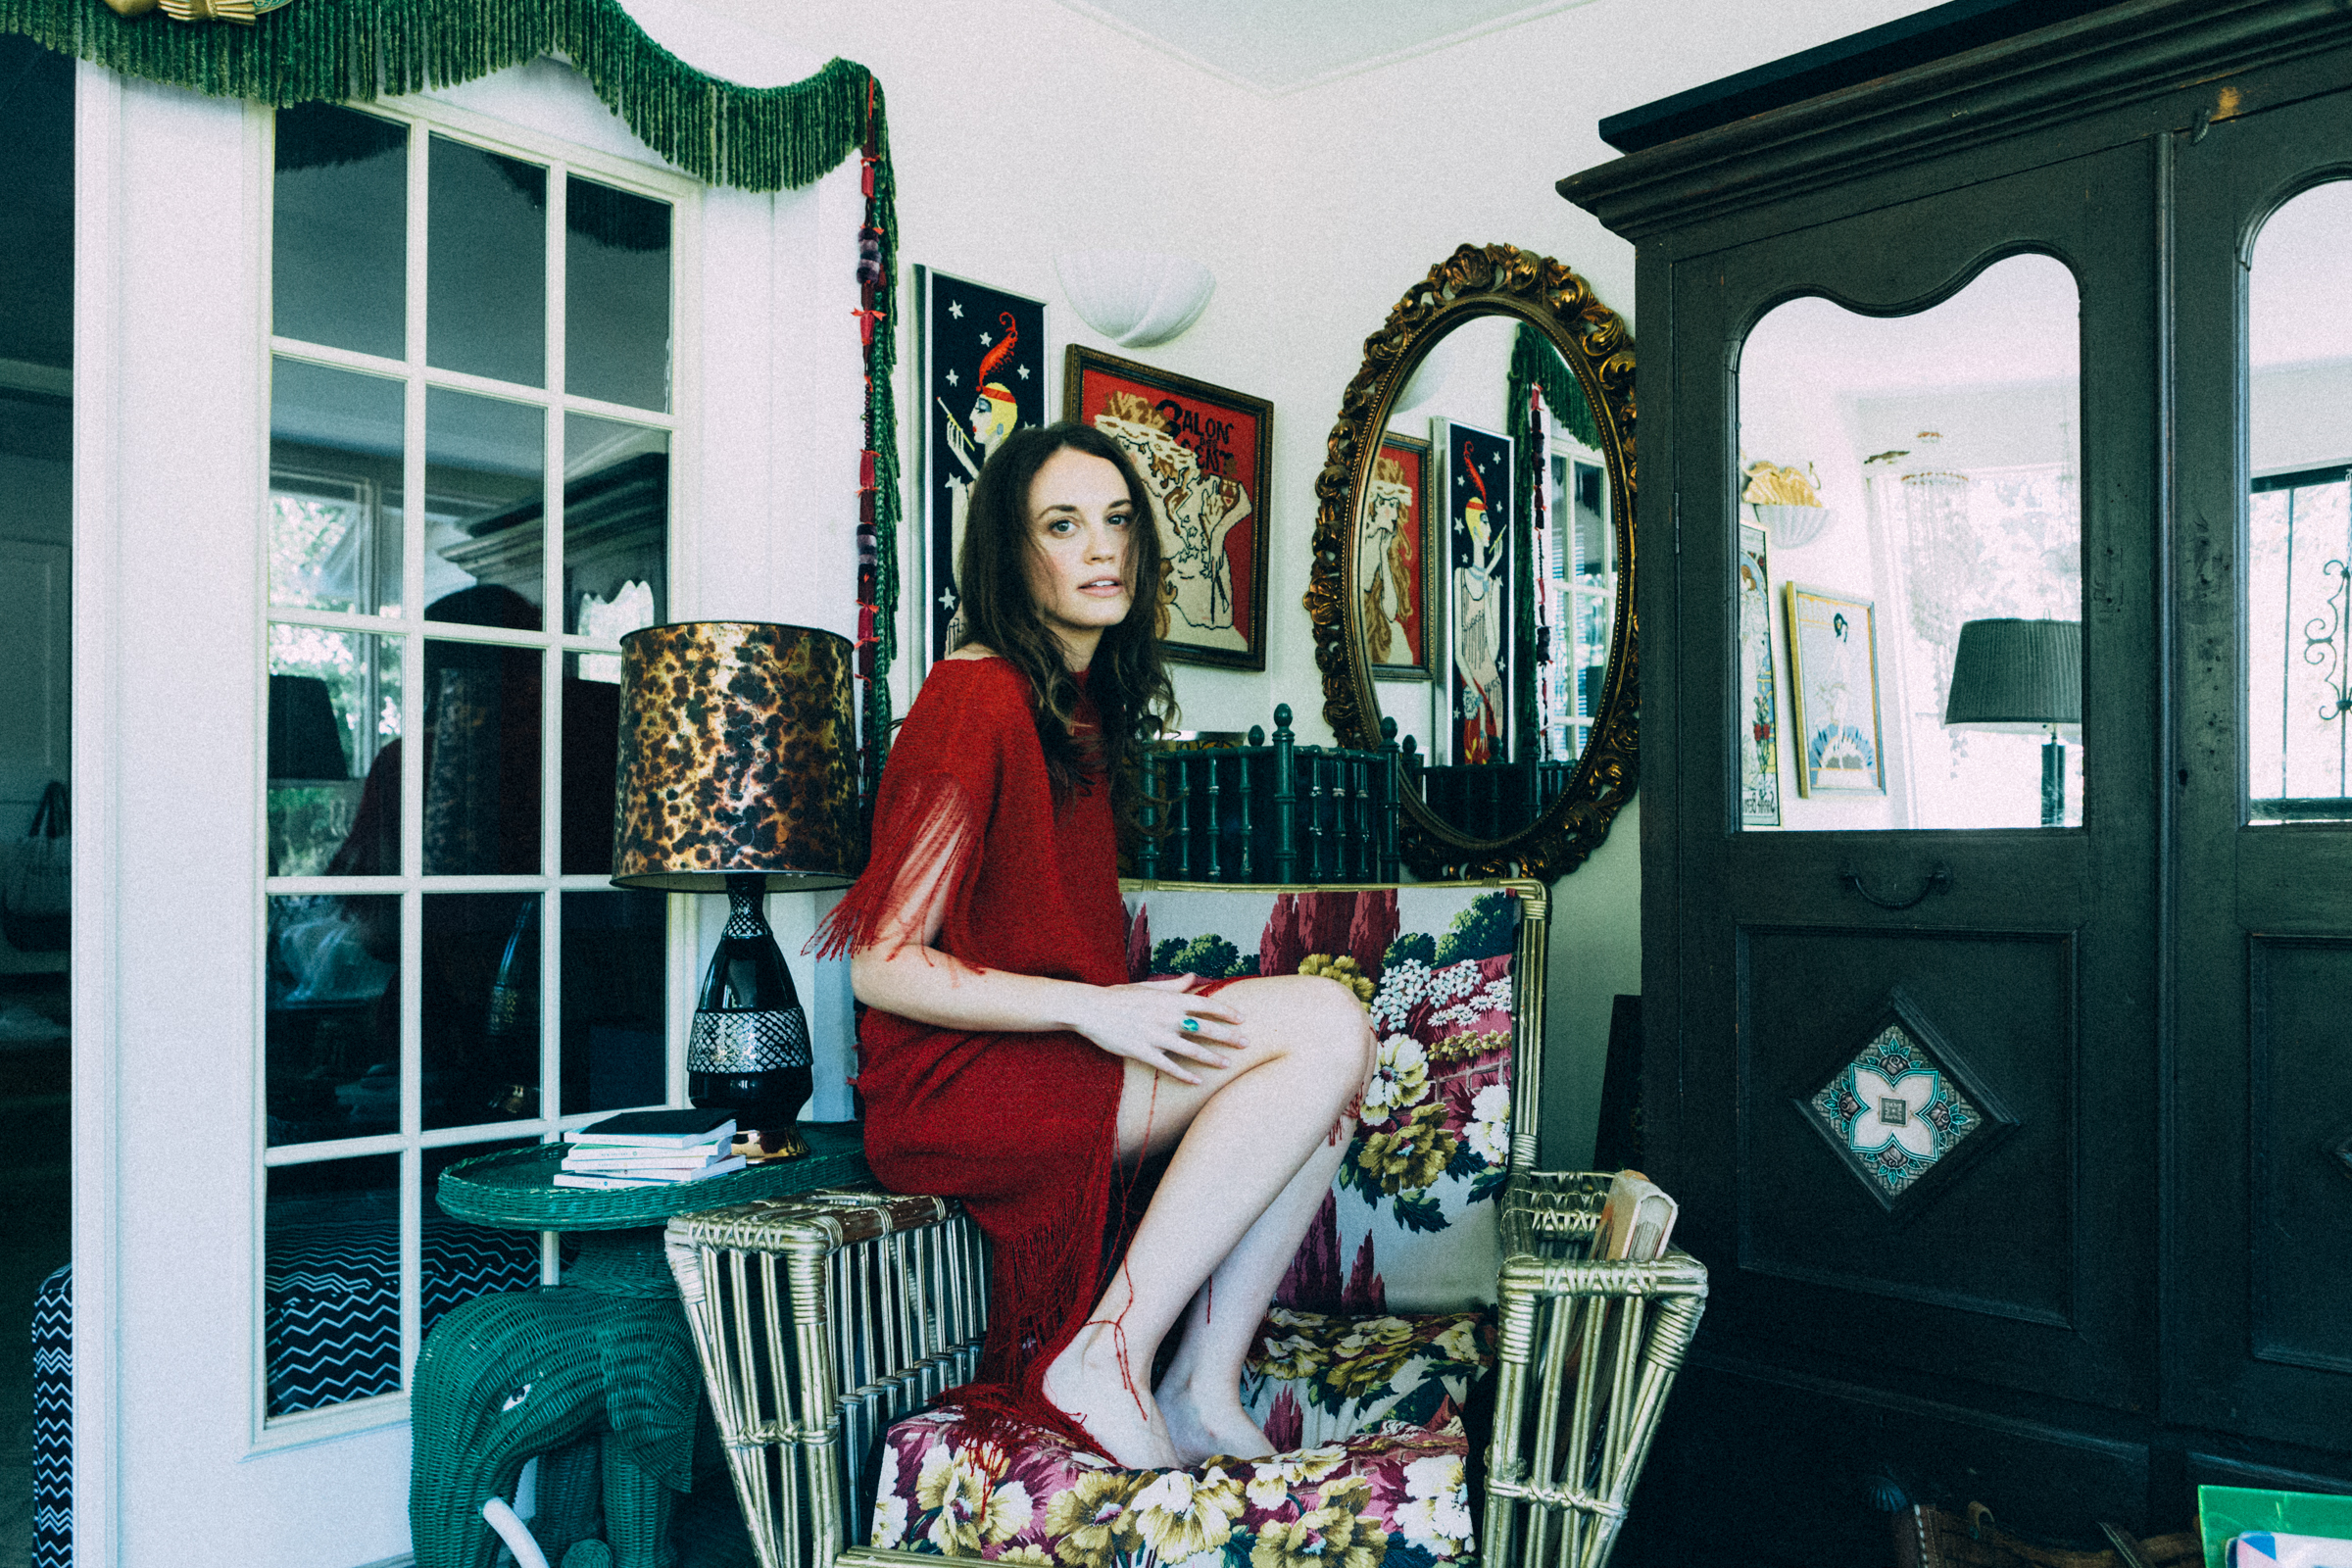 Elise Joseph, photographed in the home of Libby Callaway. All photos by Heidi Ross.